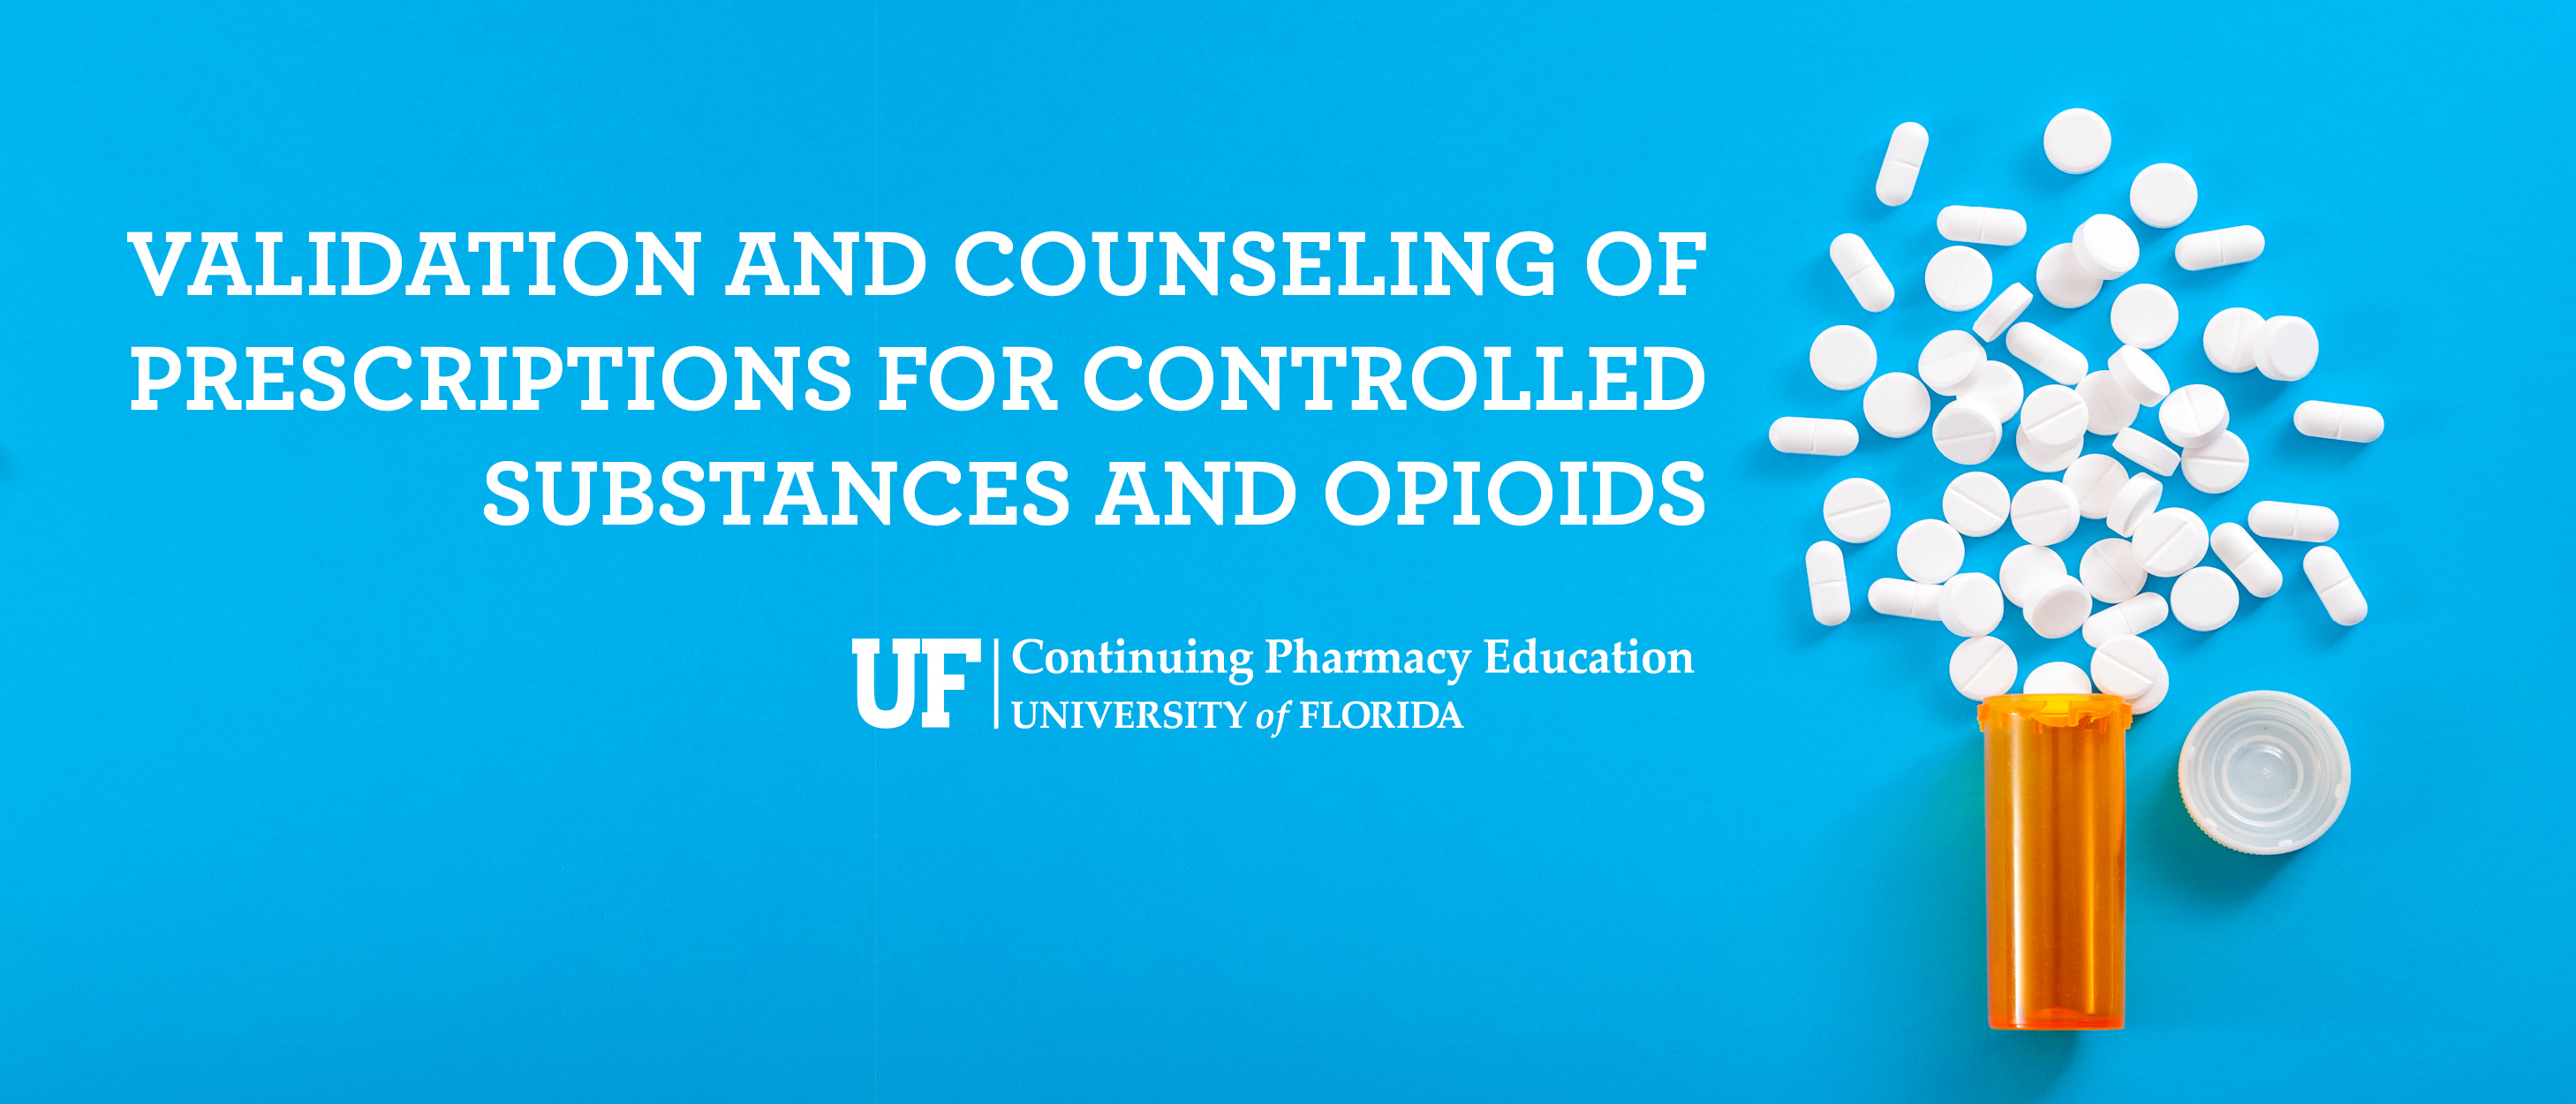 controlled substances banner